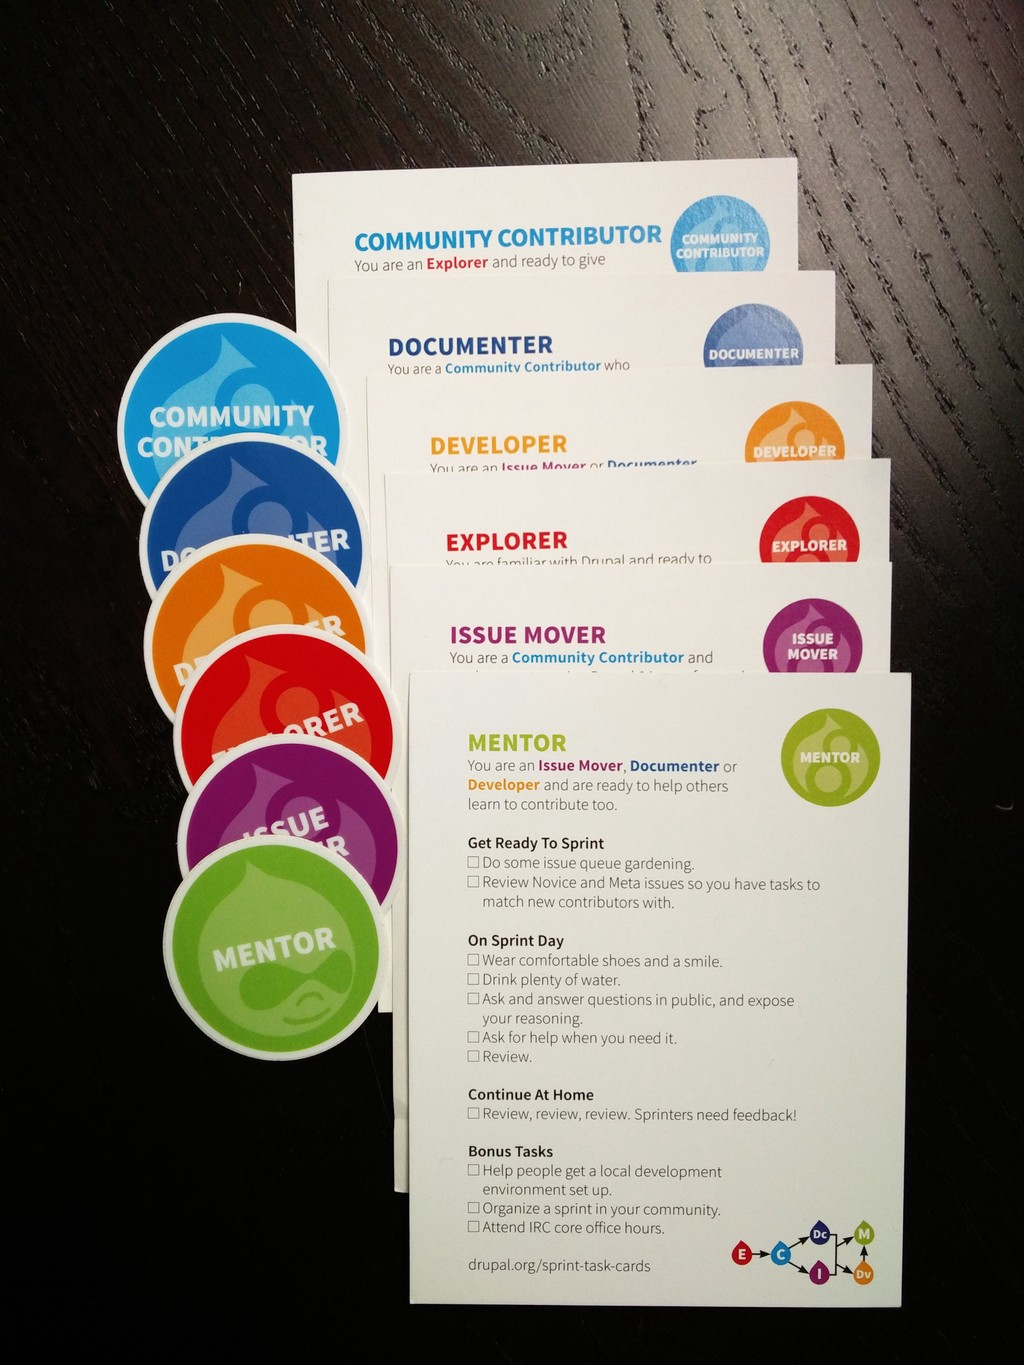 Drupal mentoring cards and badges